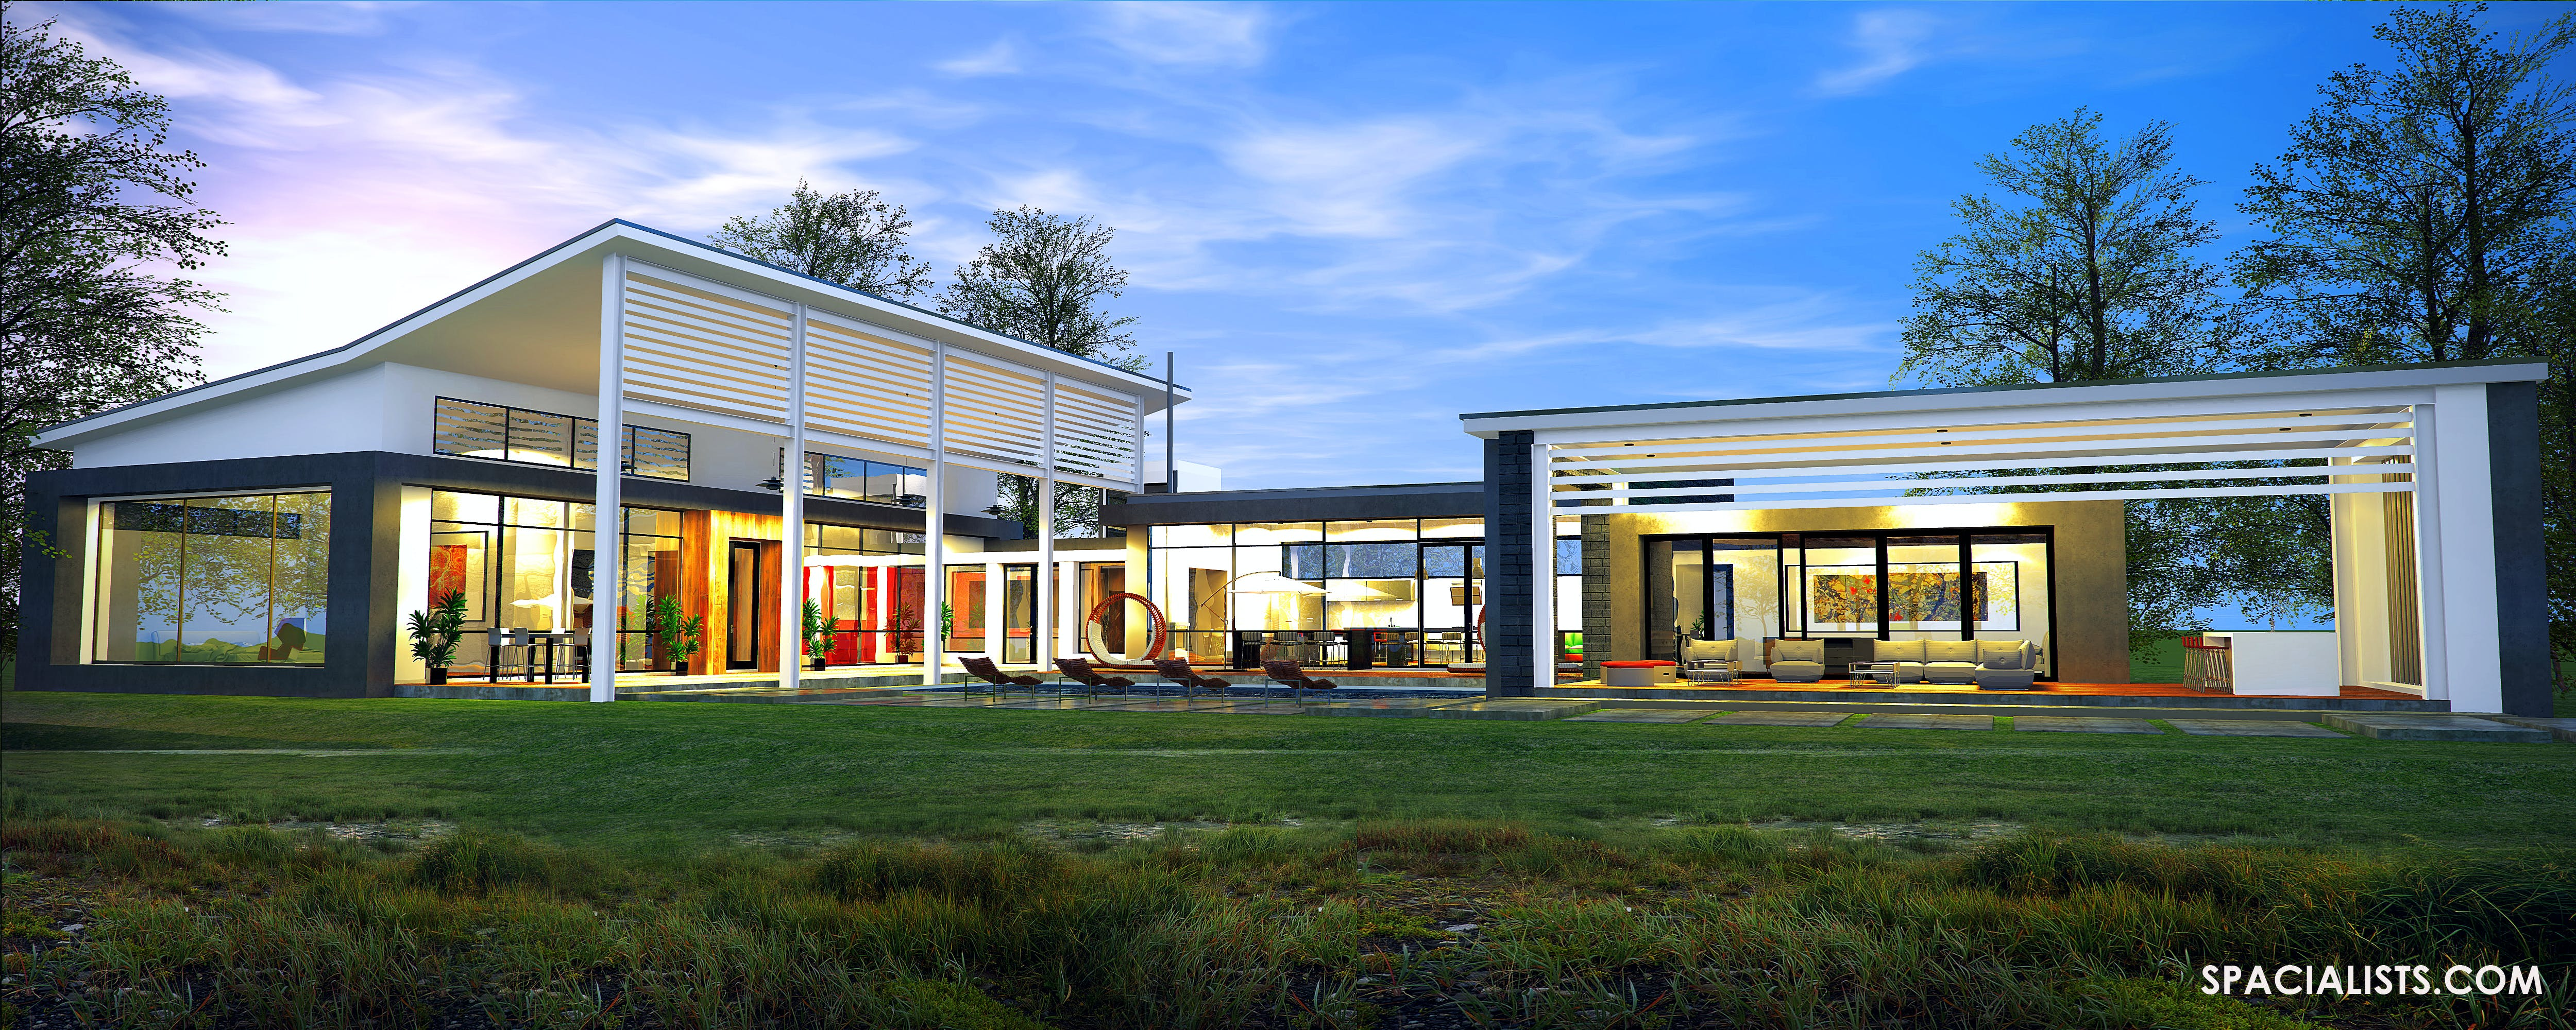 3d Rendering Modern Cape Cod Design Spacialists